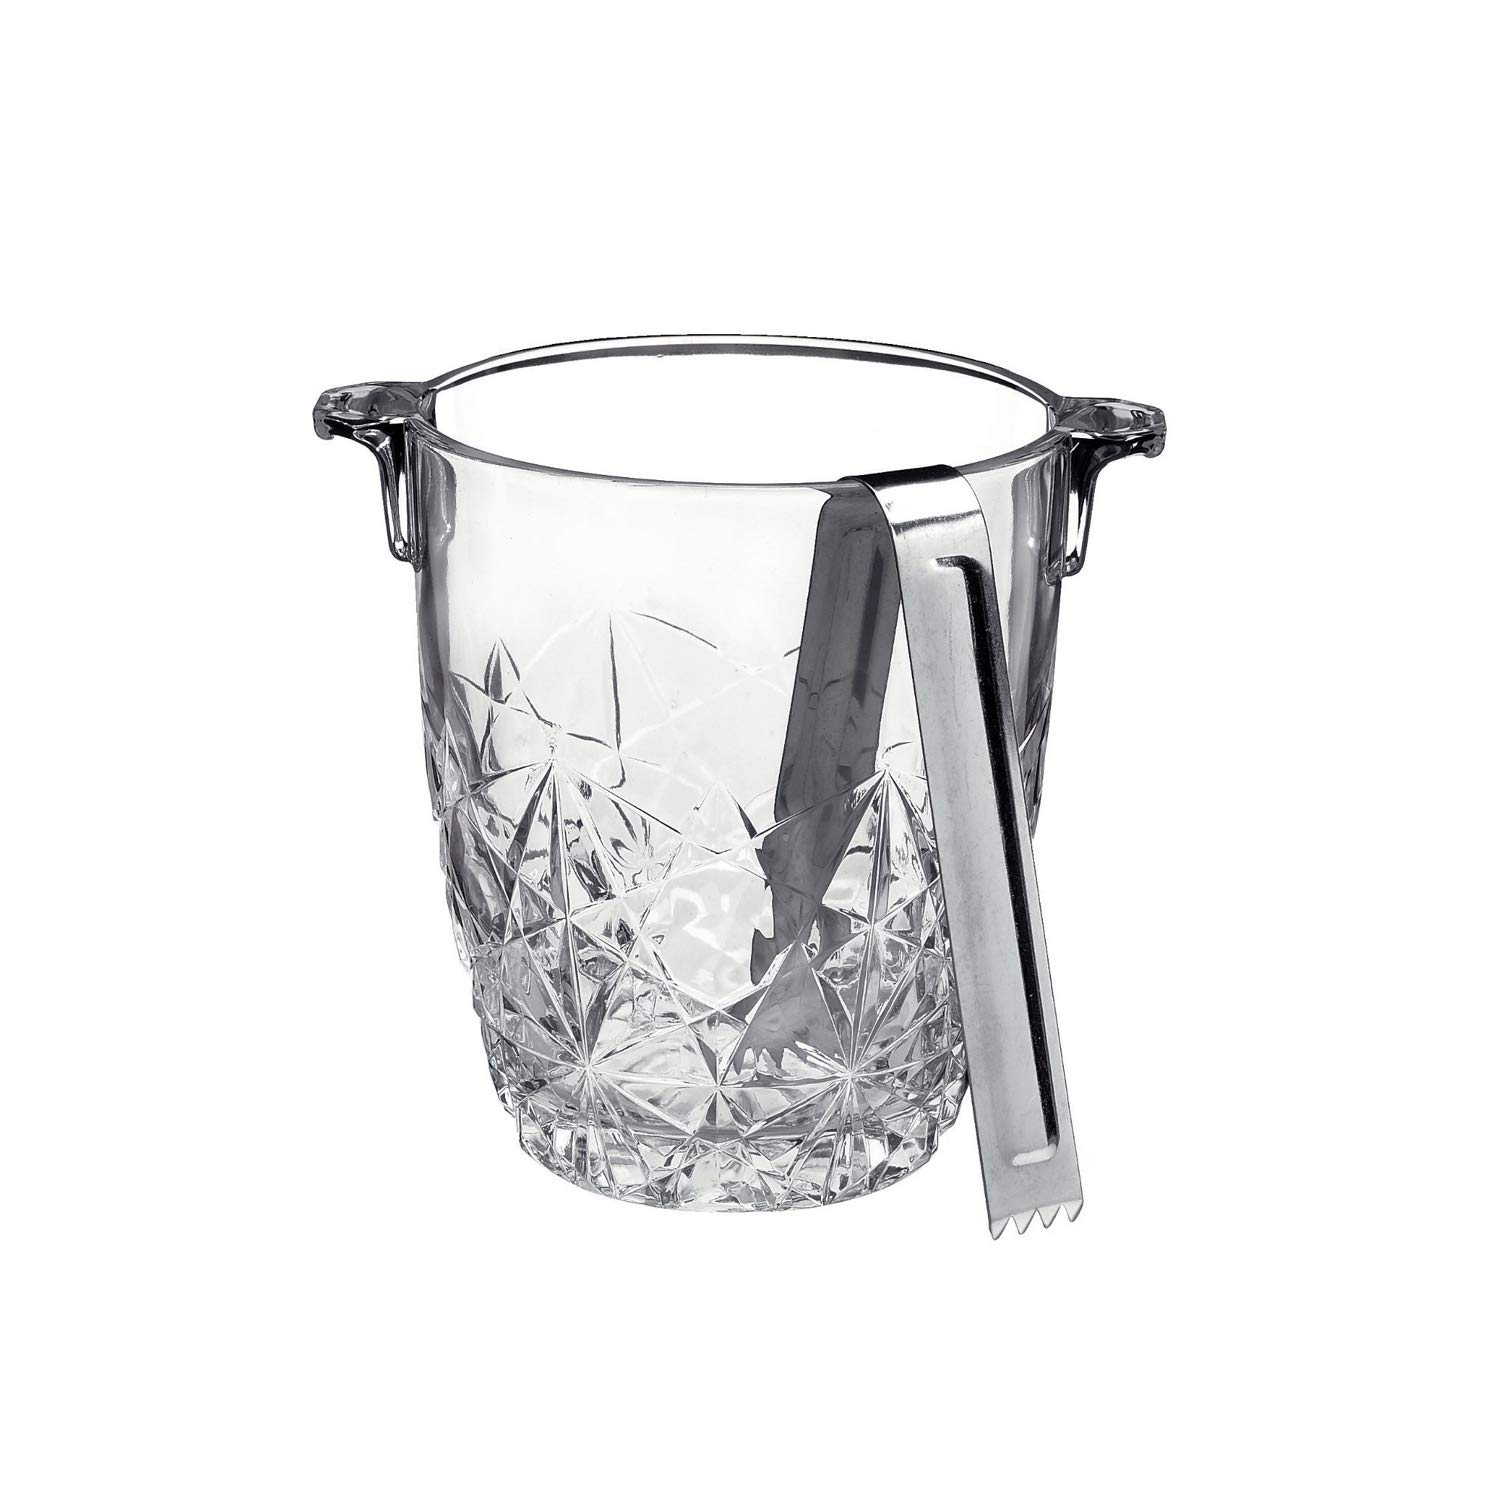 Bormioli Rocco Dedalo Ice Bucket With Stainless Steel Tongs | Etched, Star-Cut Design Italian Glass Bucket [30.50 oz] | Dishwasher-Safe & Perfect For Your Home Bar by Bormioli Rocco (Image #1)